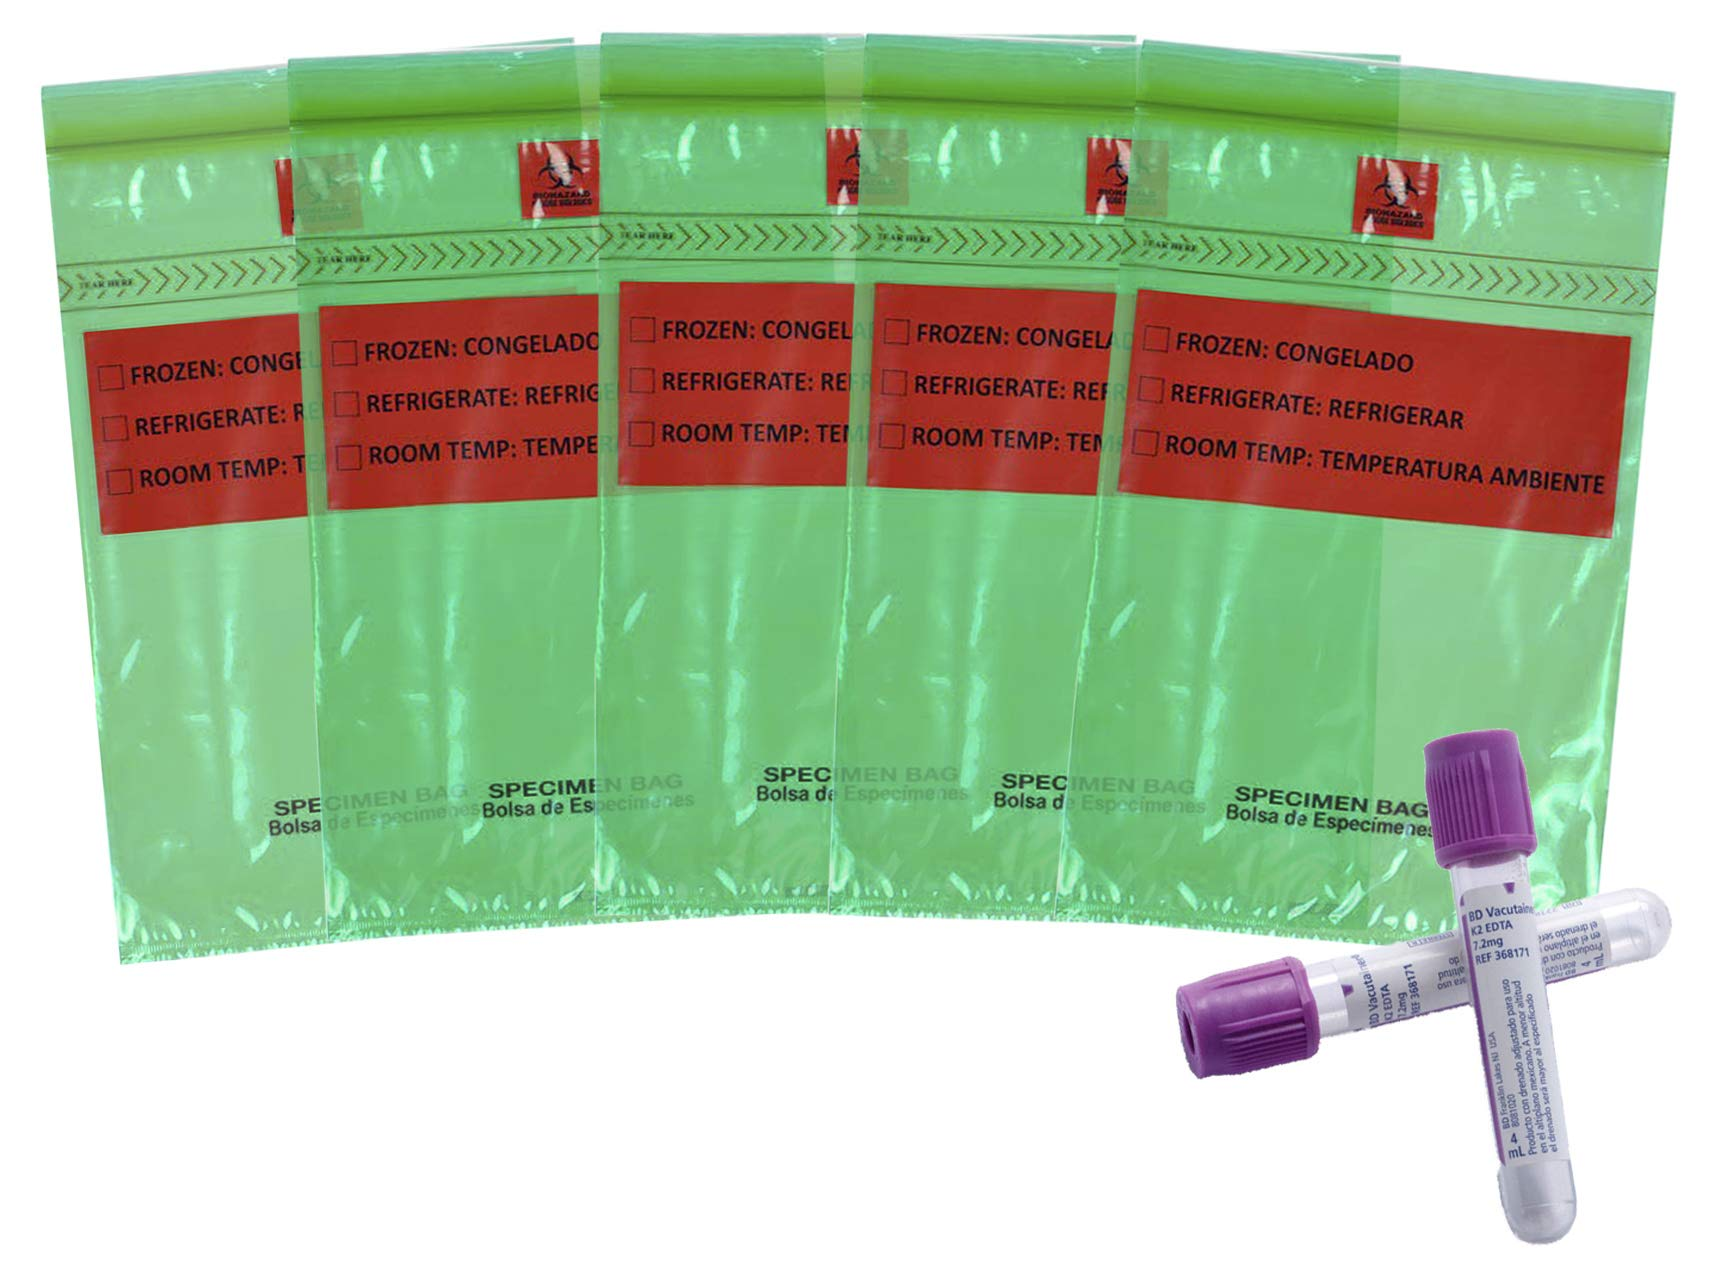 APQ Pack of 100 Specimen Transfer Bags, Green 6 x 9. Zip Lock Polyethylene Bags 6x9. Seal Top Plastic Bags, 1.75 mil for Healthcare Needs. Great for clinics and Hospitals. Removable Biohazard Symbol.